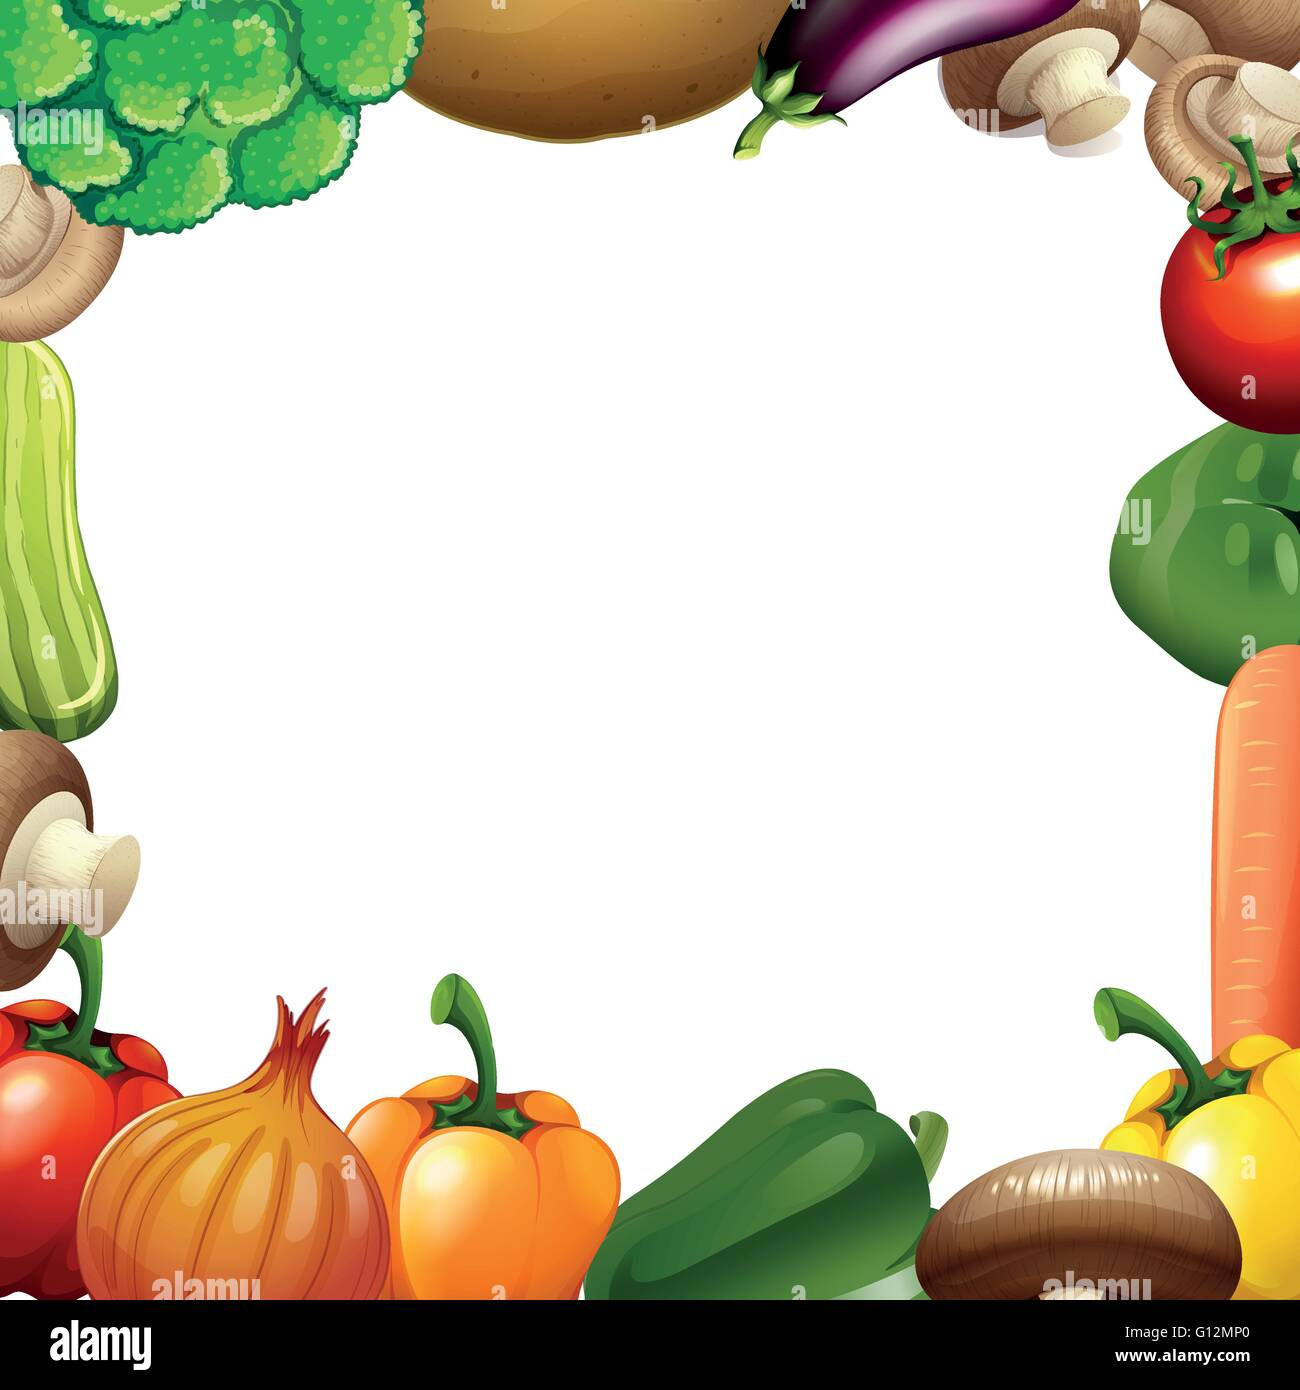 border design with mixed vegetables illustration stock